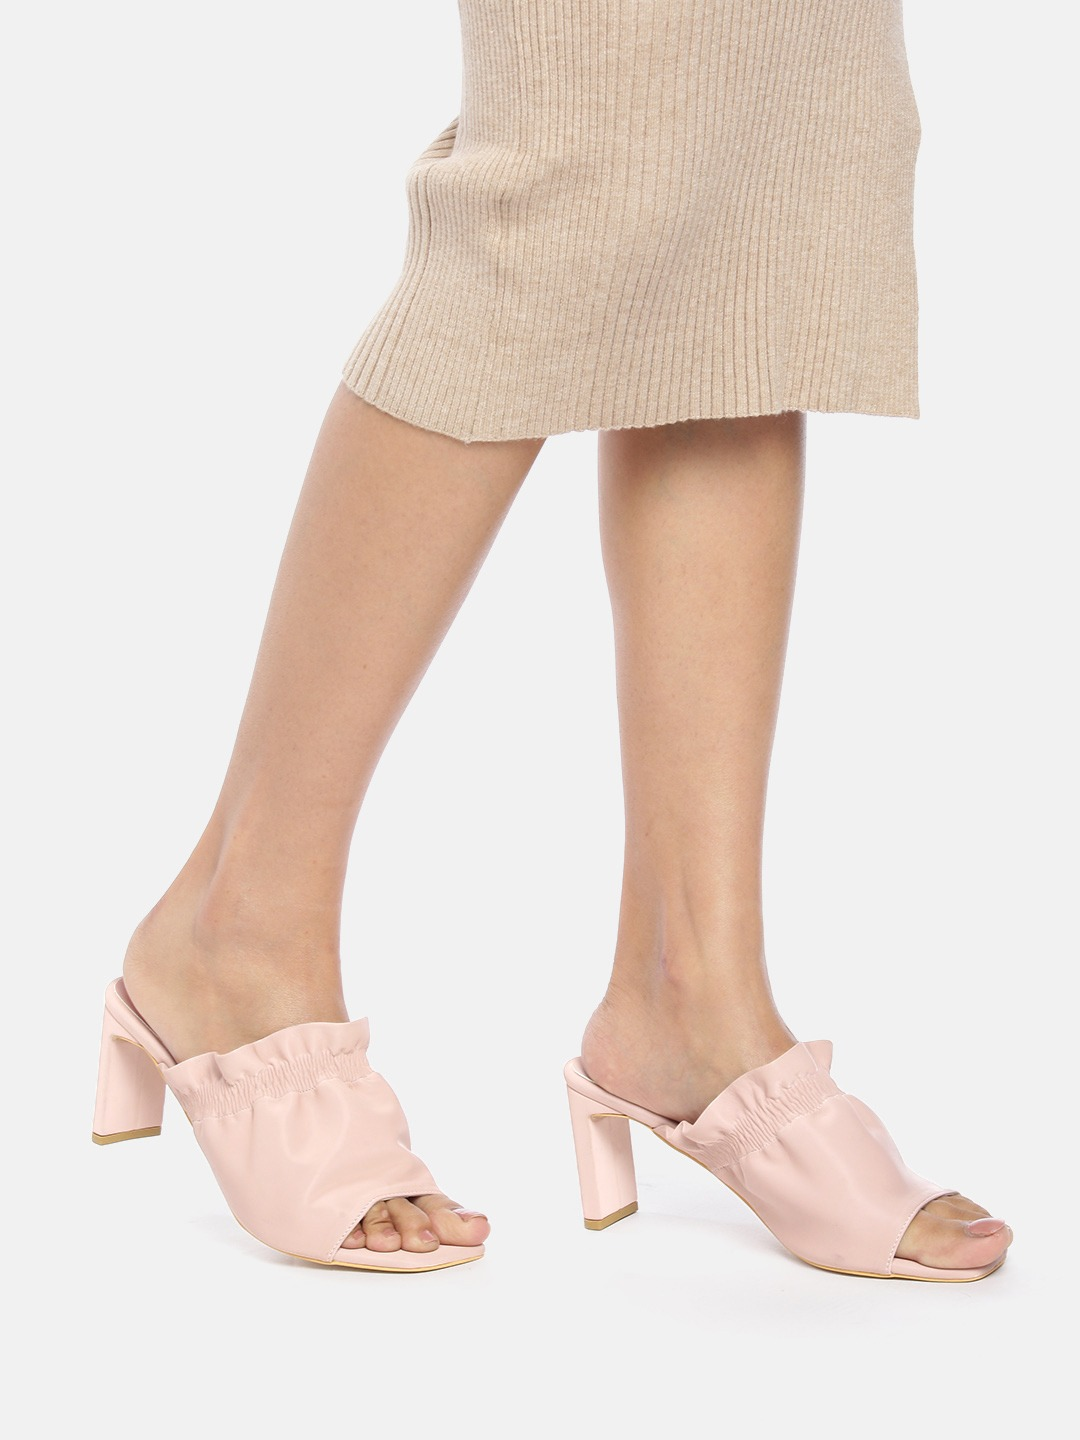 Heels and Wedges-The Prettiest Ruched Mule Heels8